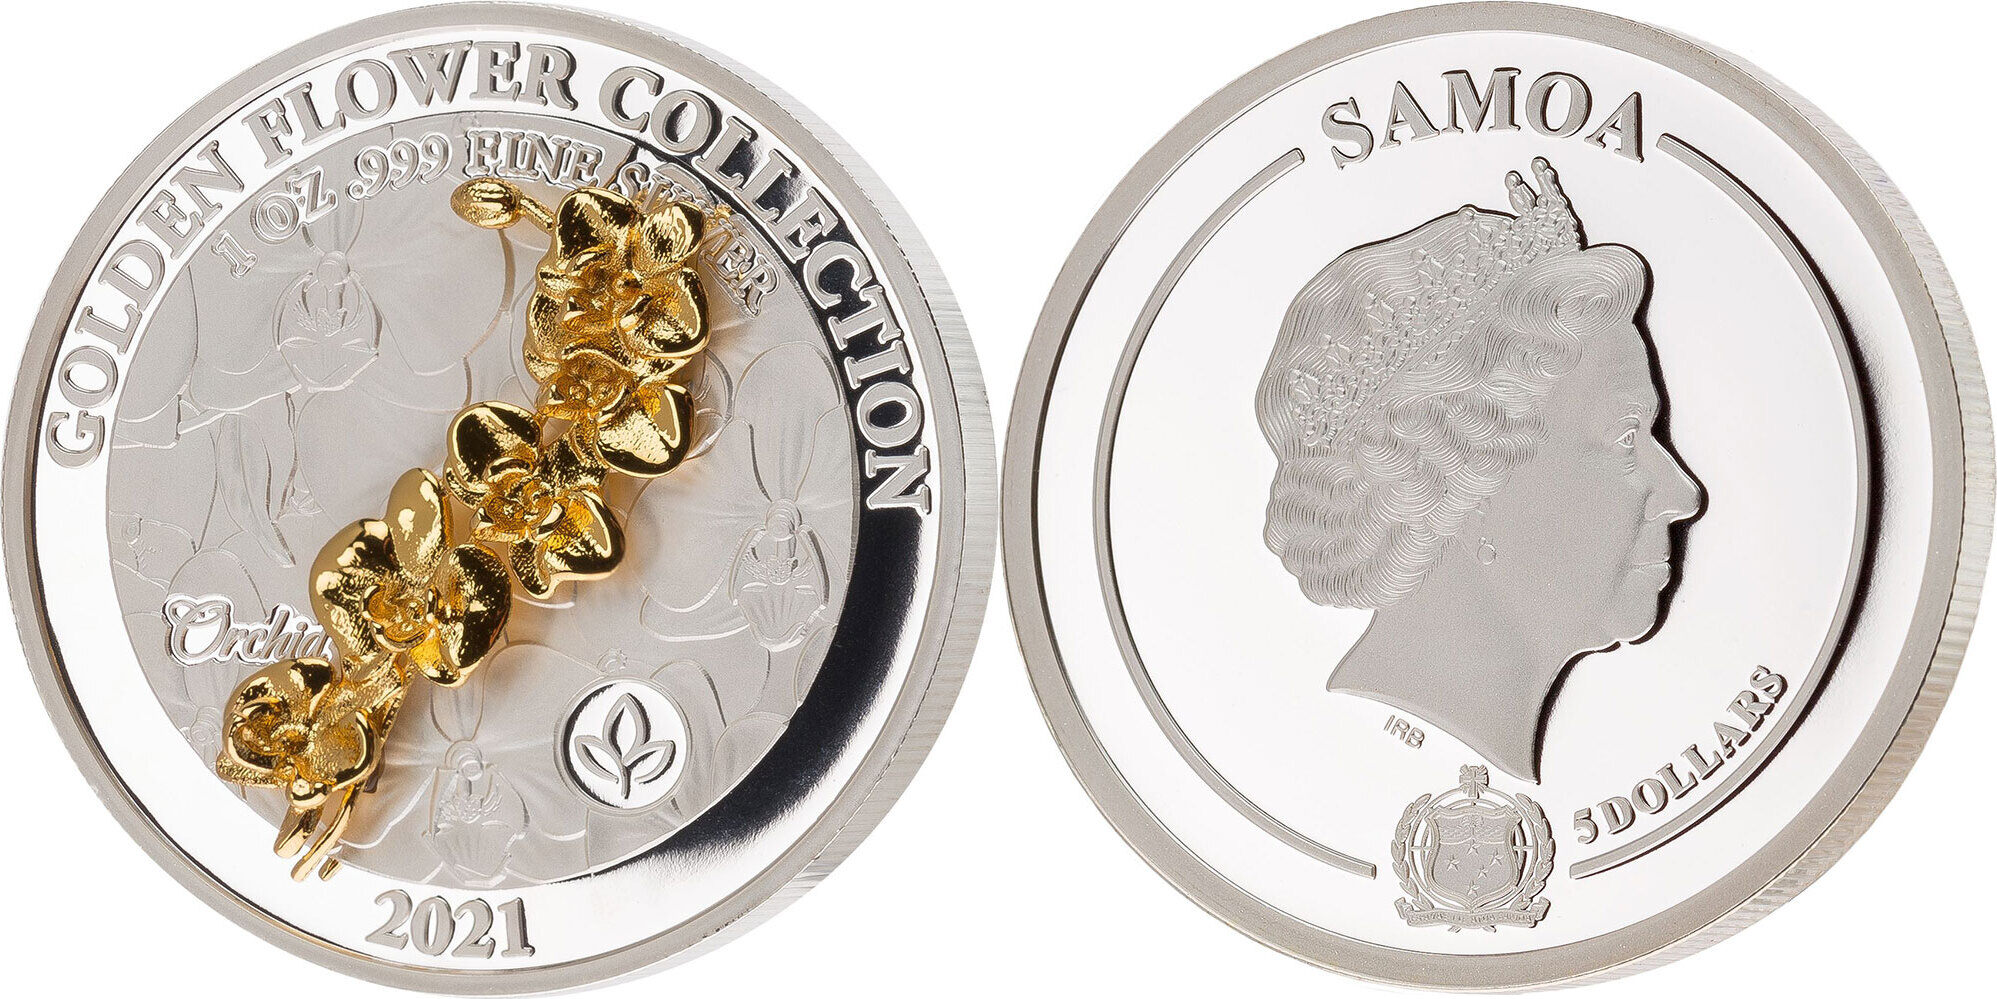 5 Dollars Orchid Golden Flower Collection 1 Oz Silver Coin 5 Samoa 2021 Pp Ma Shops